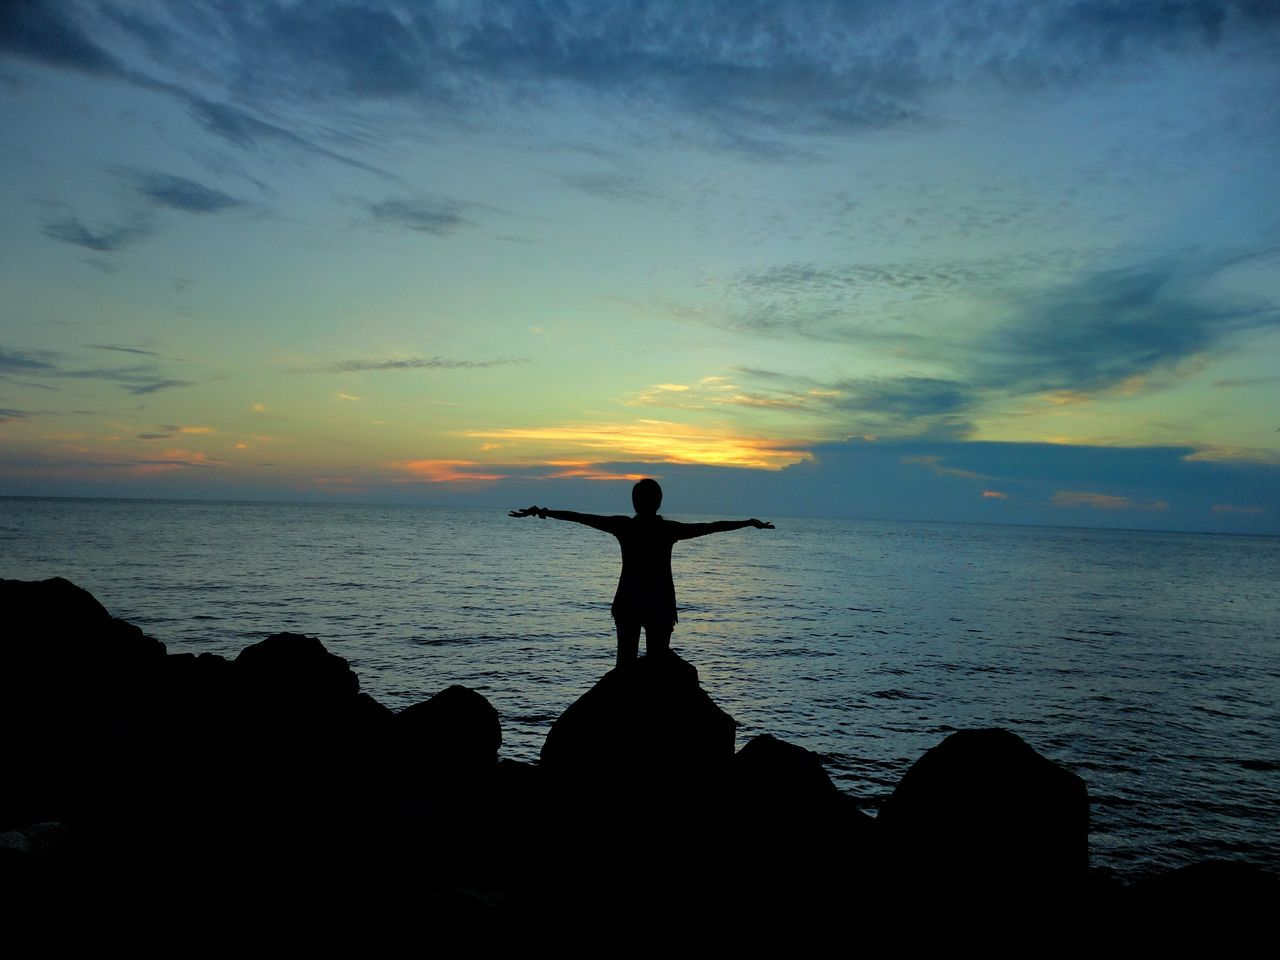 Singing the songs of the ocean. Reflection Sunset Nature Sky Silhouette Outdoors Beauty In Nature Travel Travel Destinations Oceanside One Person Shadows & Lights Facing The Ocean Arms Wide Open Silouette & Sky Camiguin Philippines Finding New Frontiers The Great Outdoors - 2017 EyeEm Awards Live For The Story